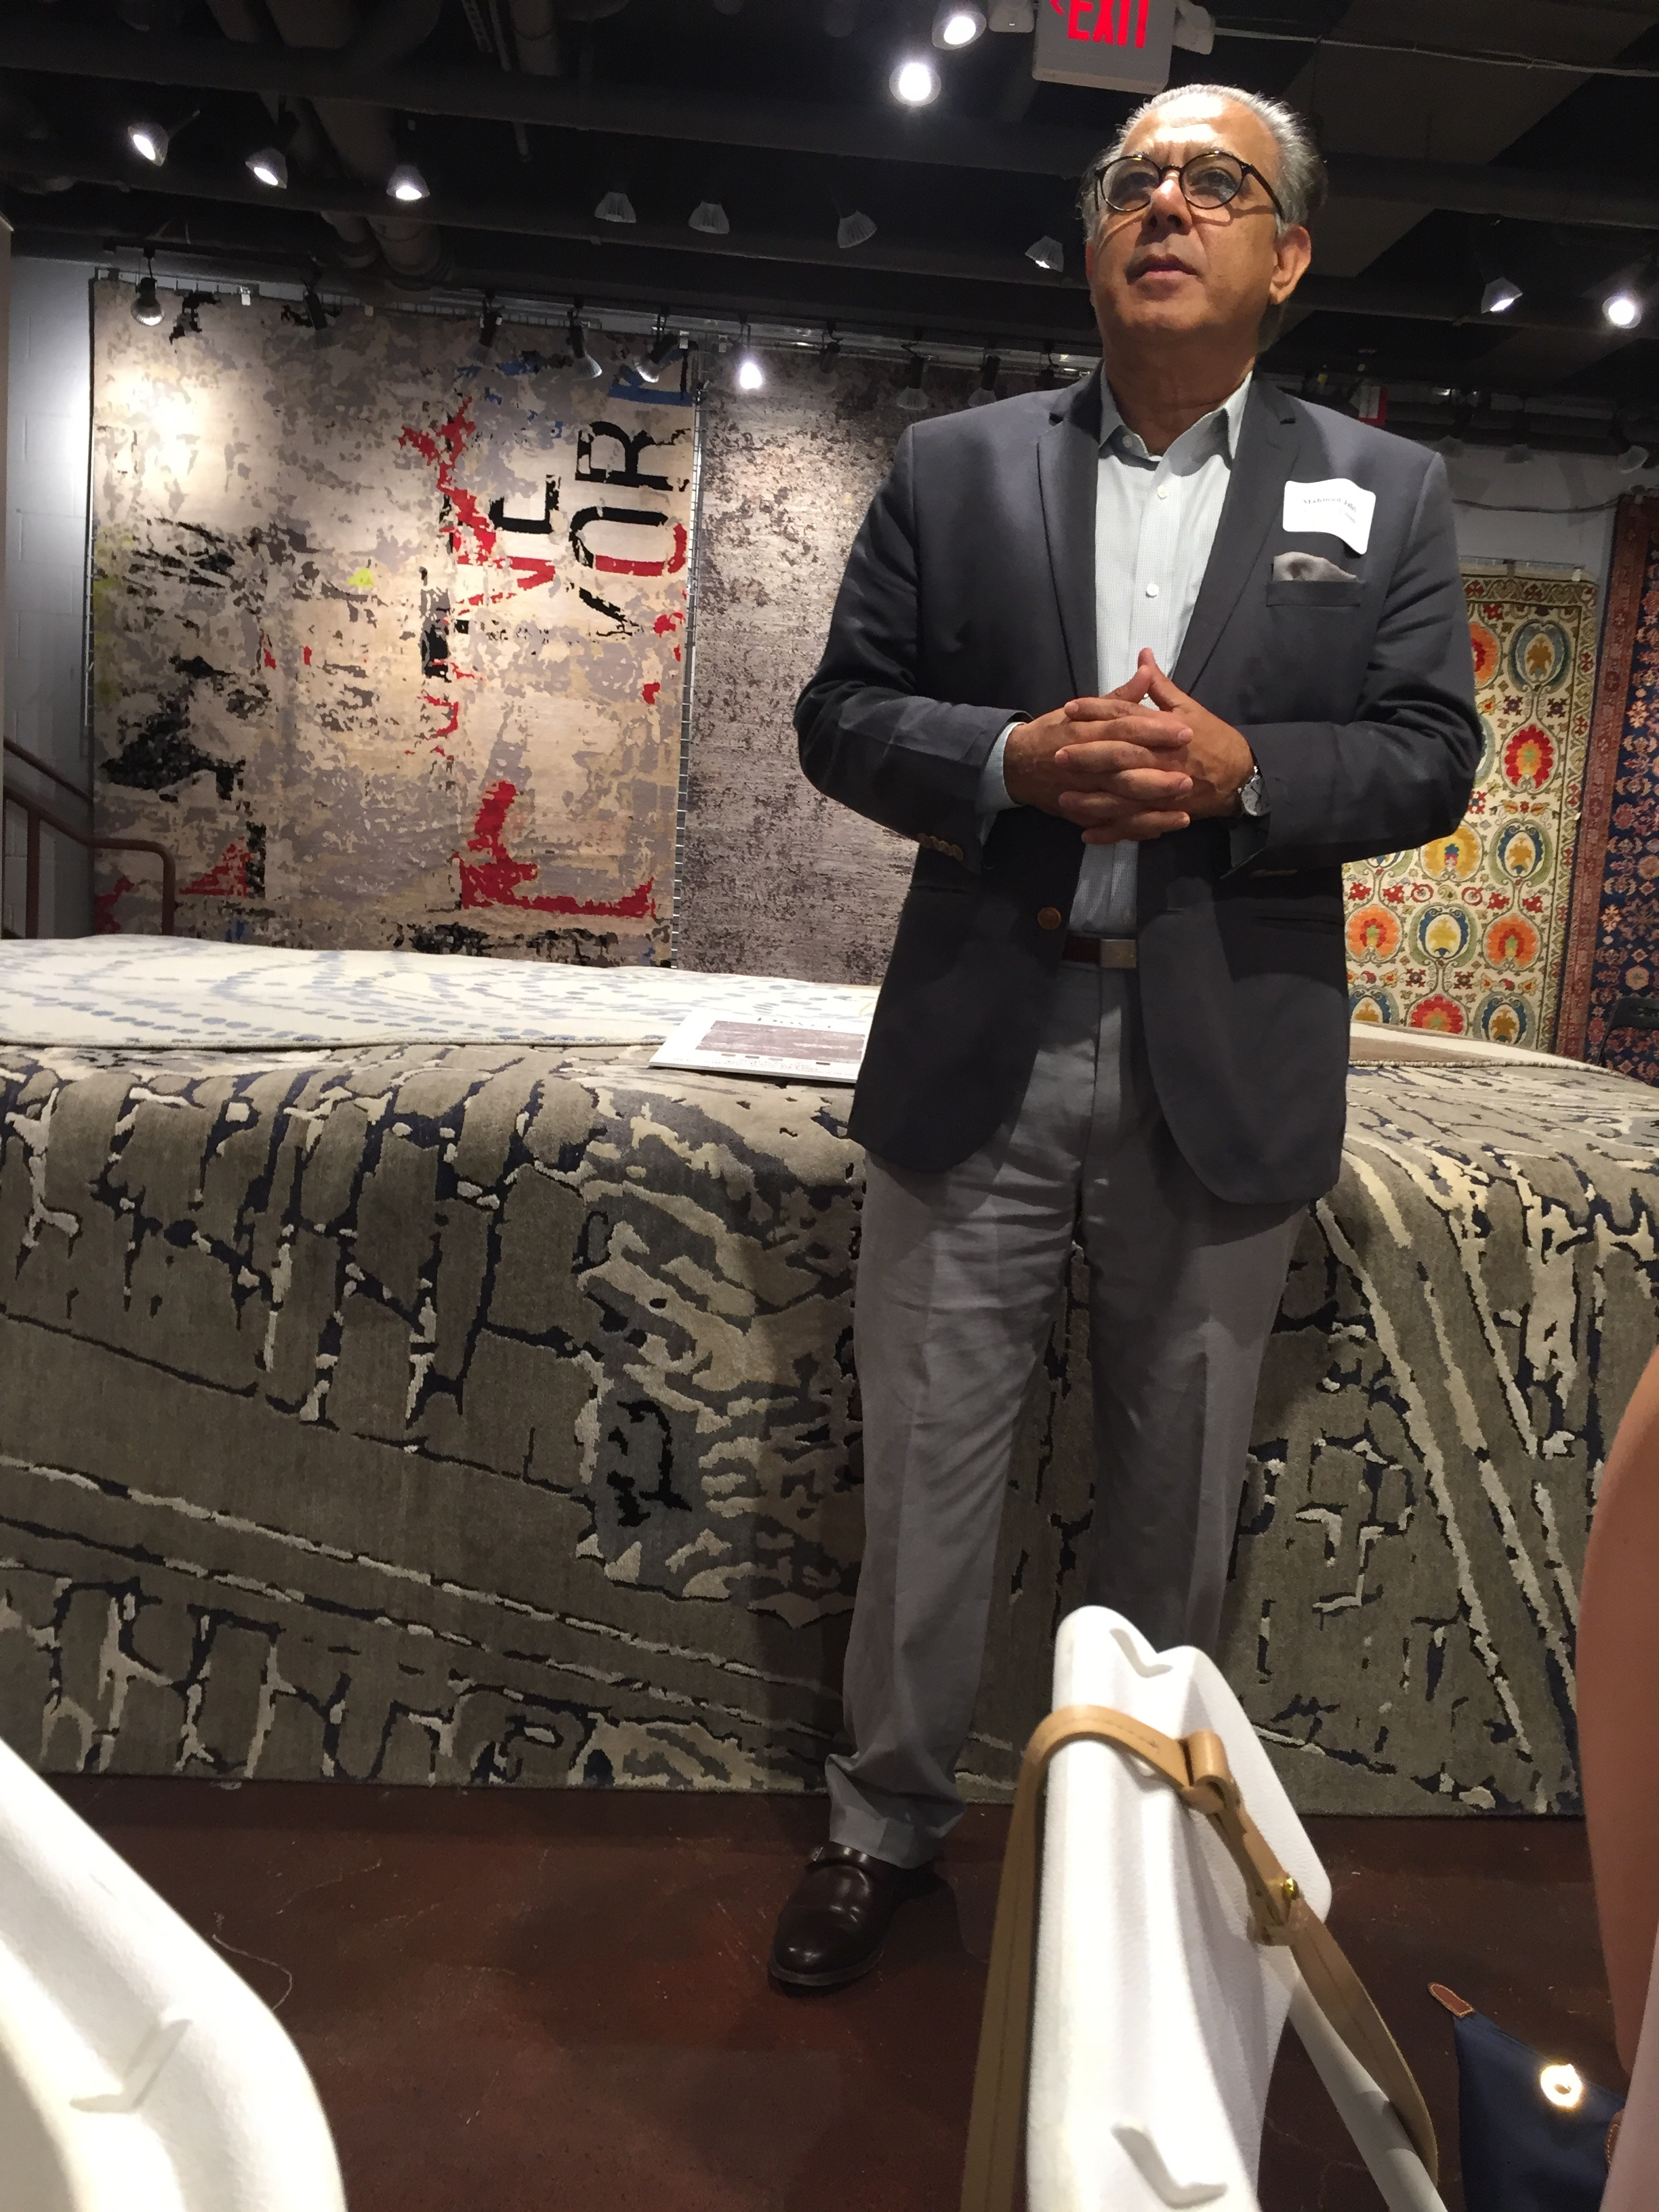 Mahmud Jafri, Owner of Dover Rugs hosted the event in his Boston Store.